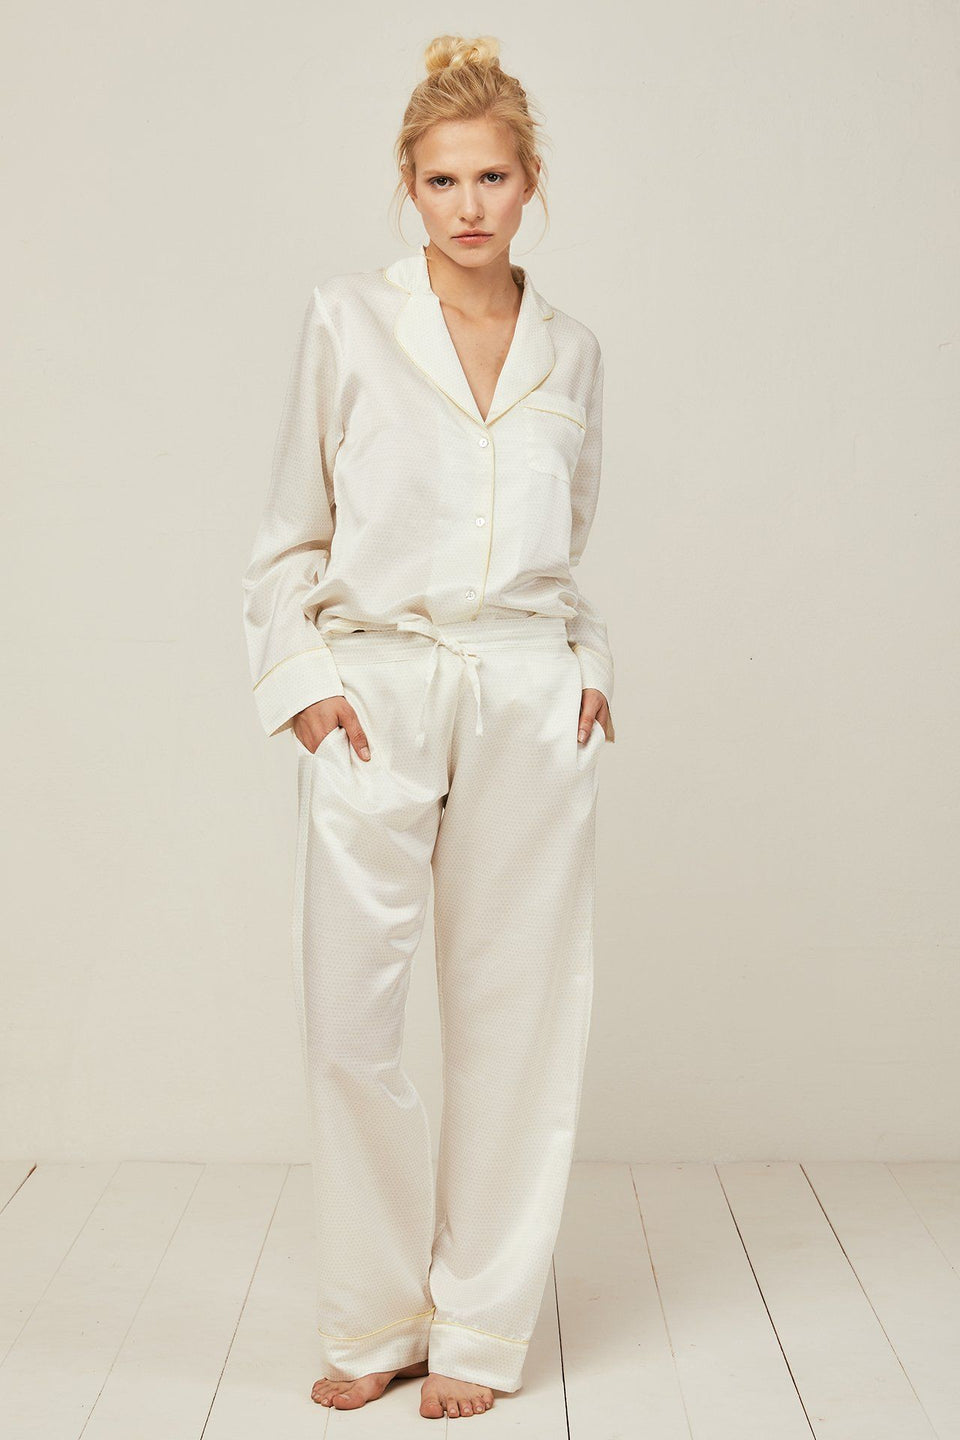 Ronja Cotton Silk Pyjama in Scala Sun - Bottom Loungewear, Pyjama, Silk, Seide, Schlafanzug | RADICE